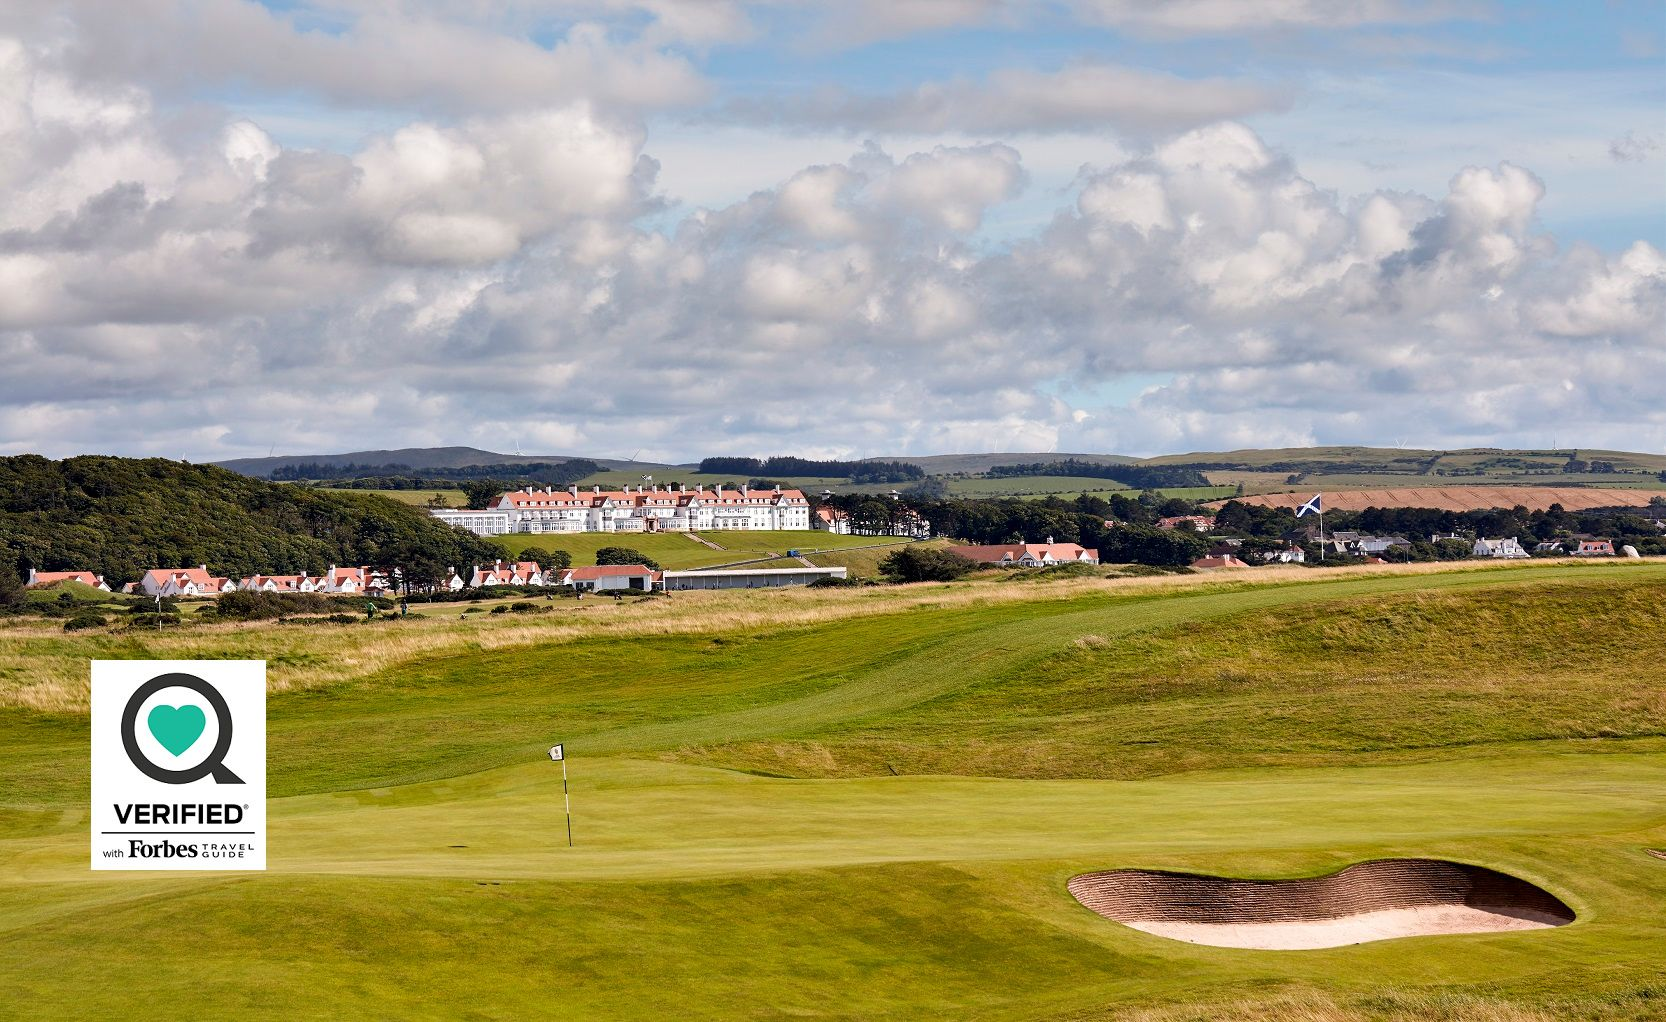 Trump Turnberry golf course with estate in background. Forbes Verified Sharecare logo overlaid on image